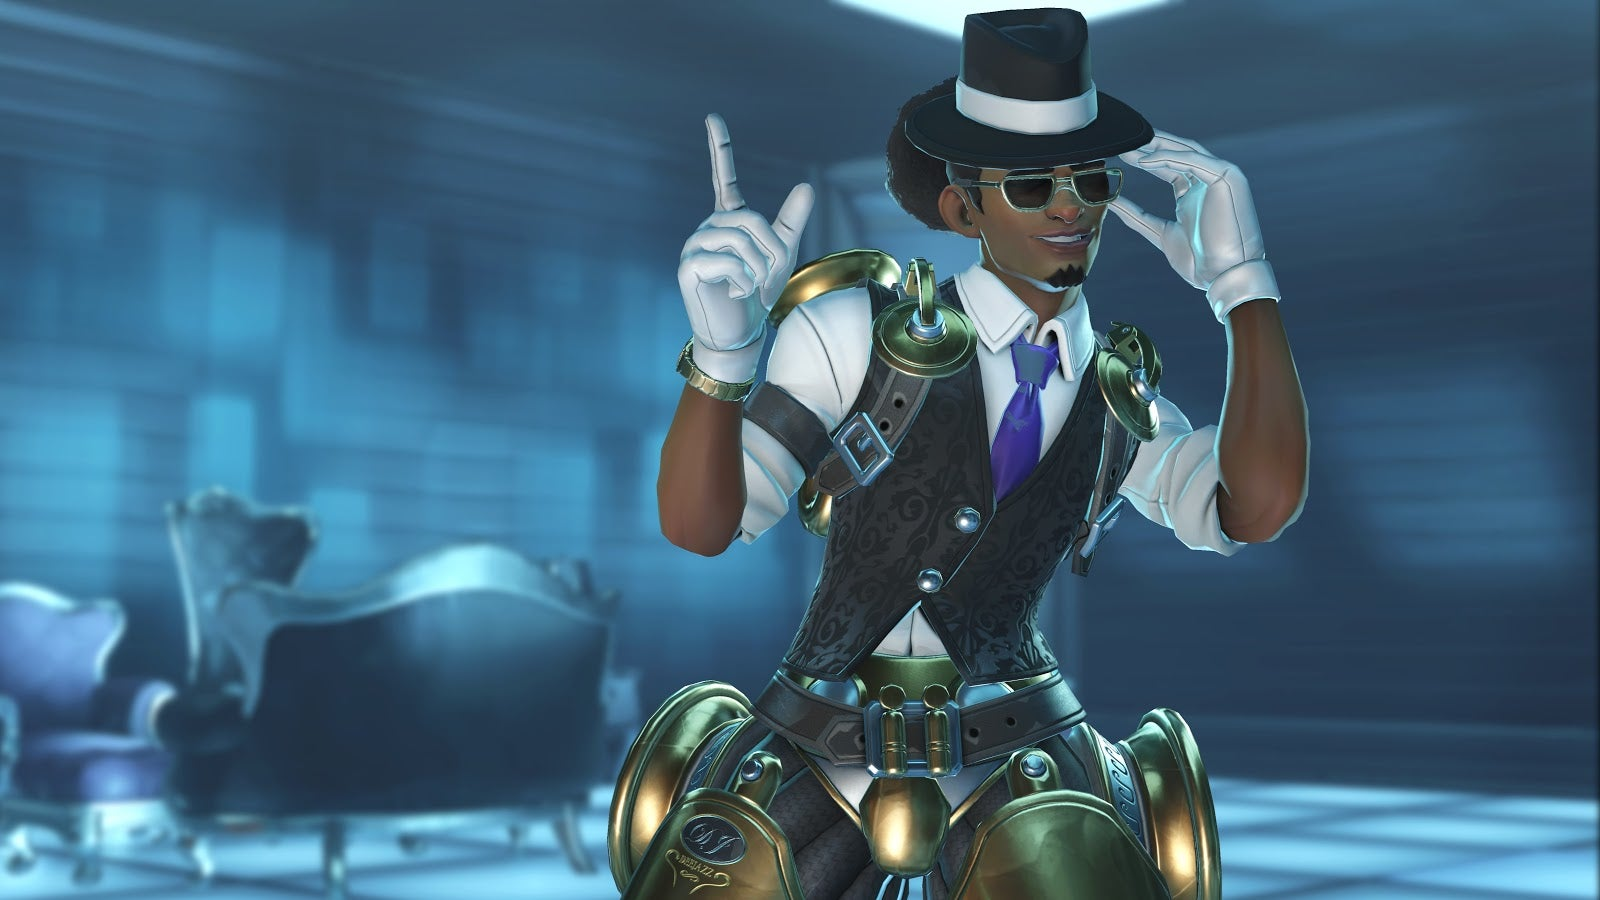 Let's Talk About Lucio's New Overwatch Skin, Which Is Bad